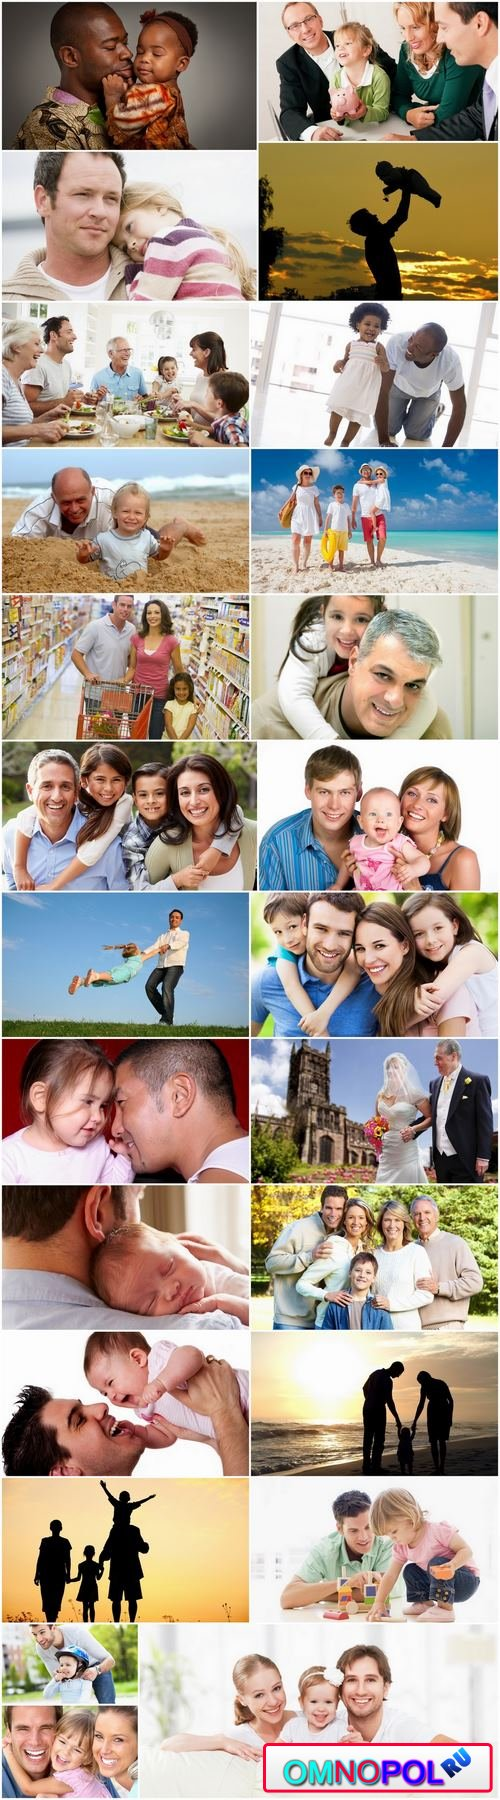 Family father daughter happy couple 25 HQ Jpeg